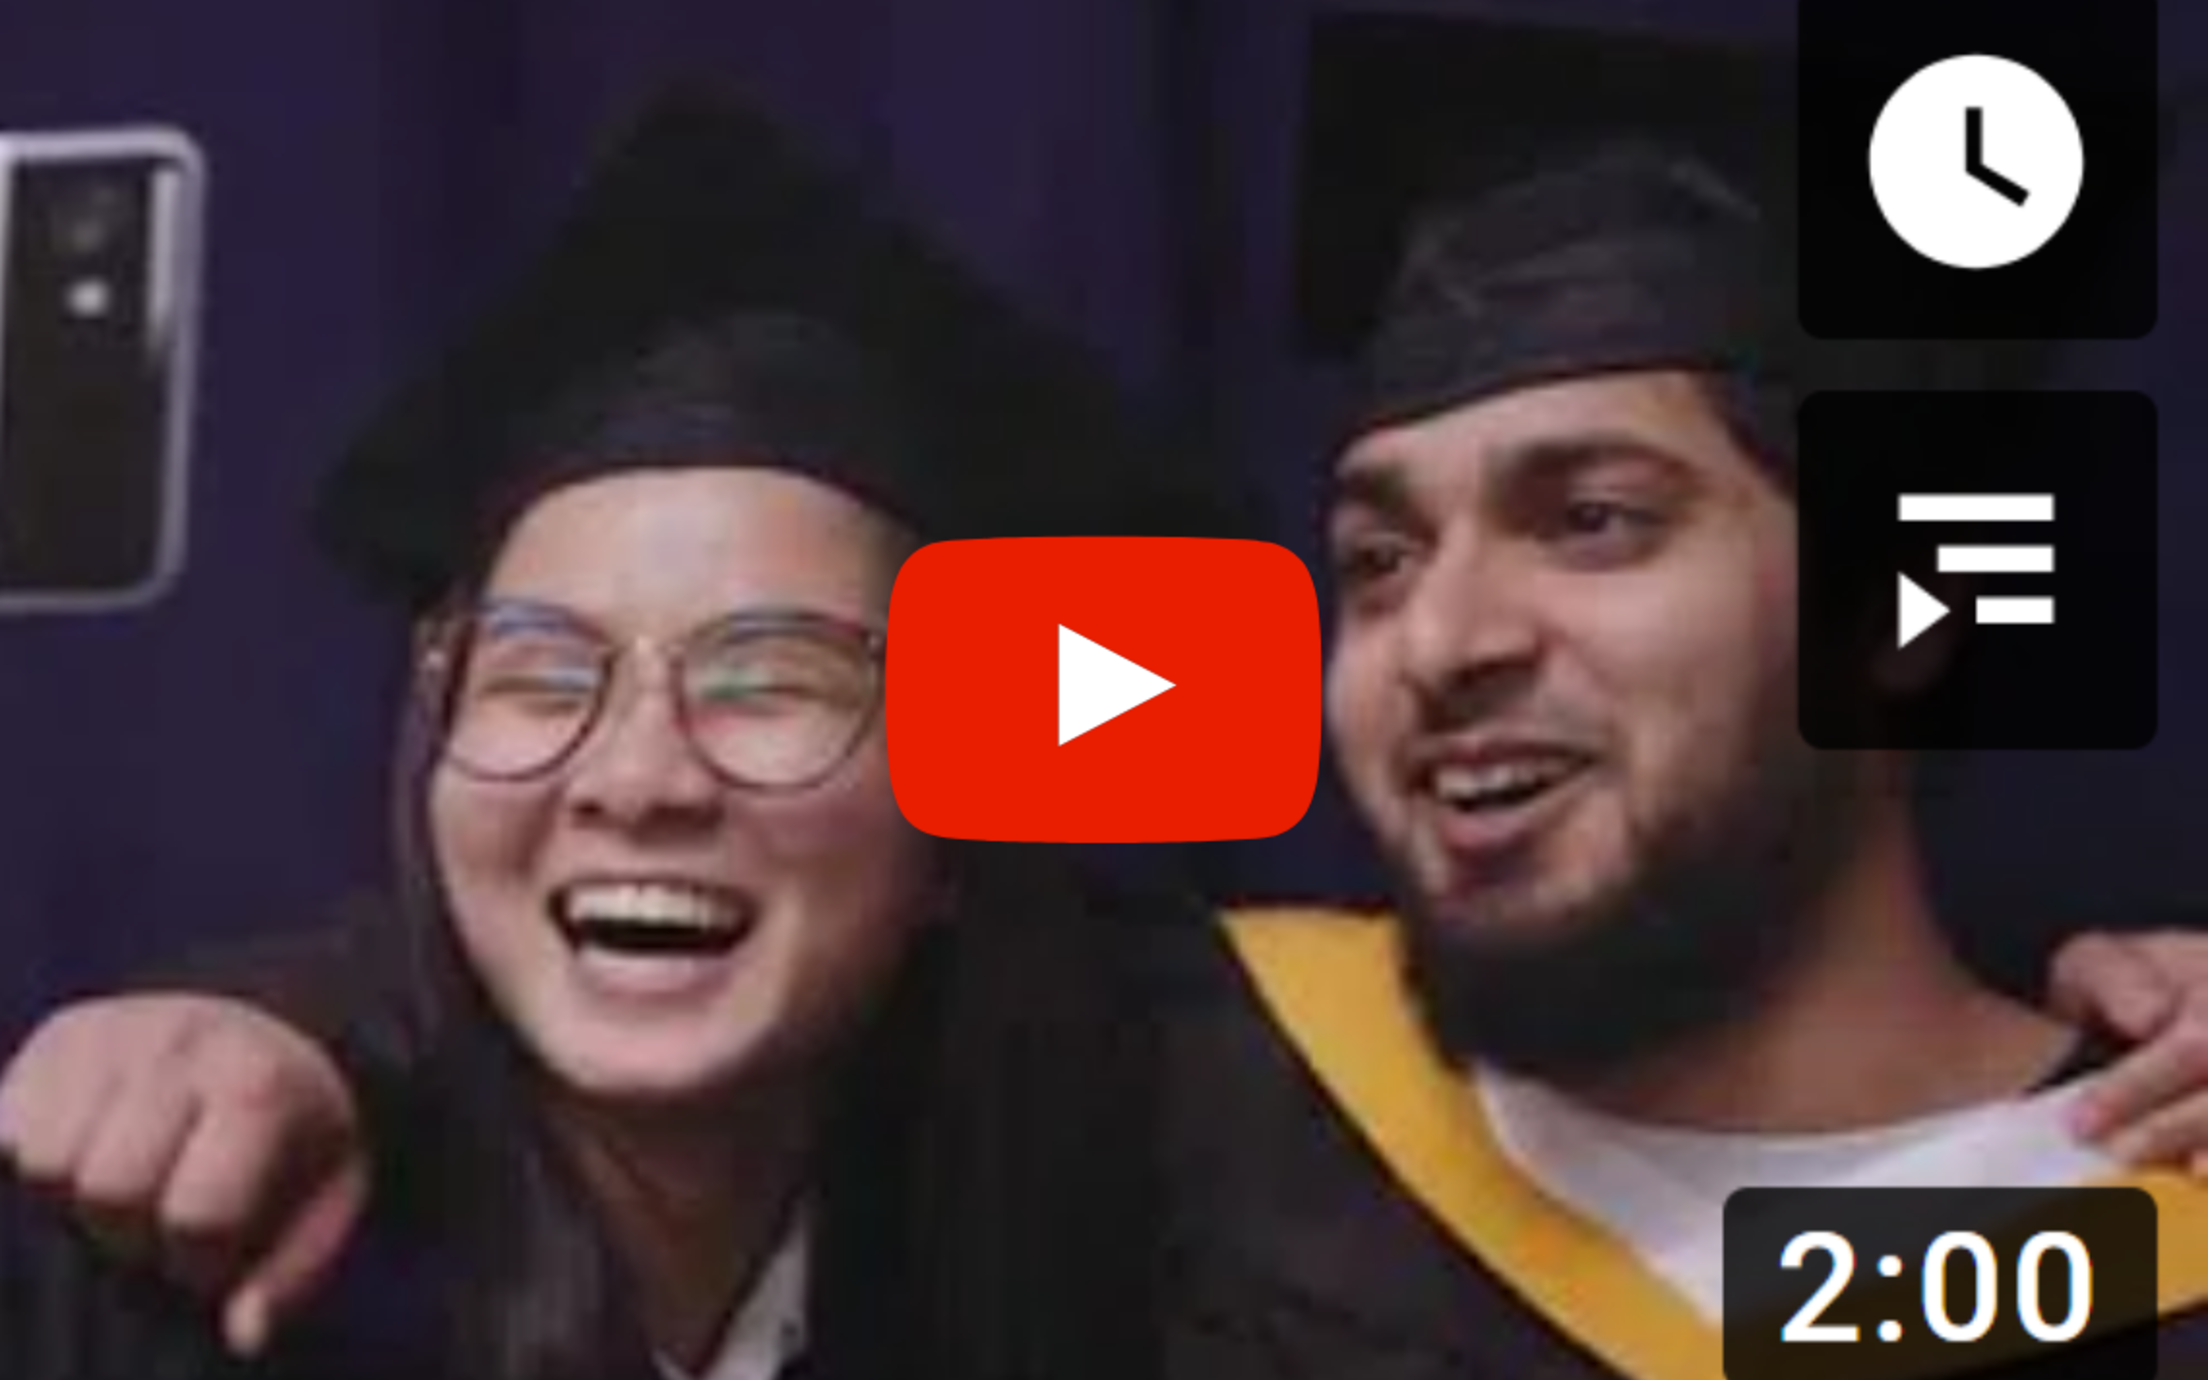 two students smiling each other in the graduation attire